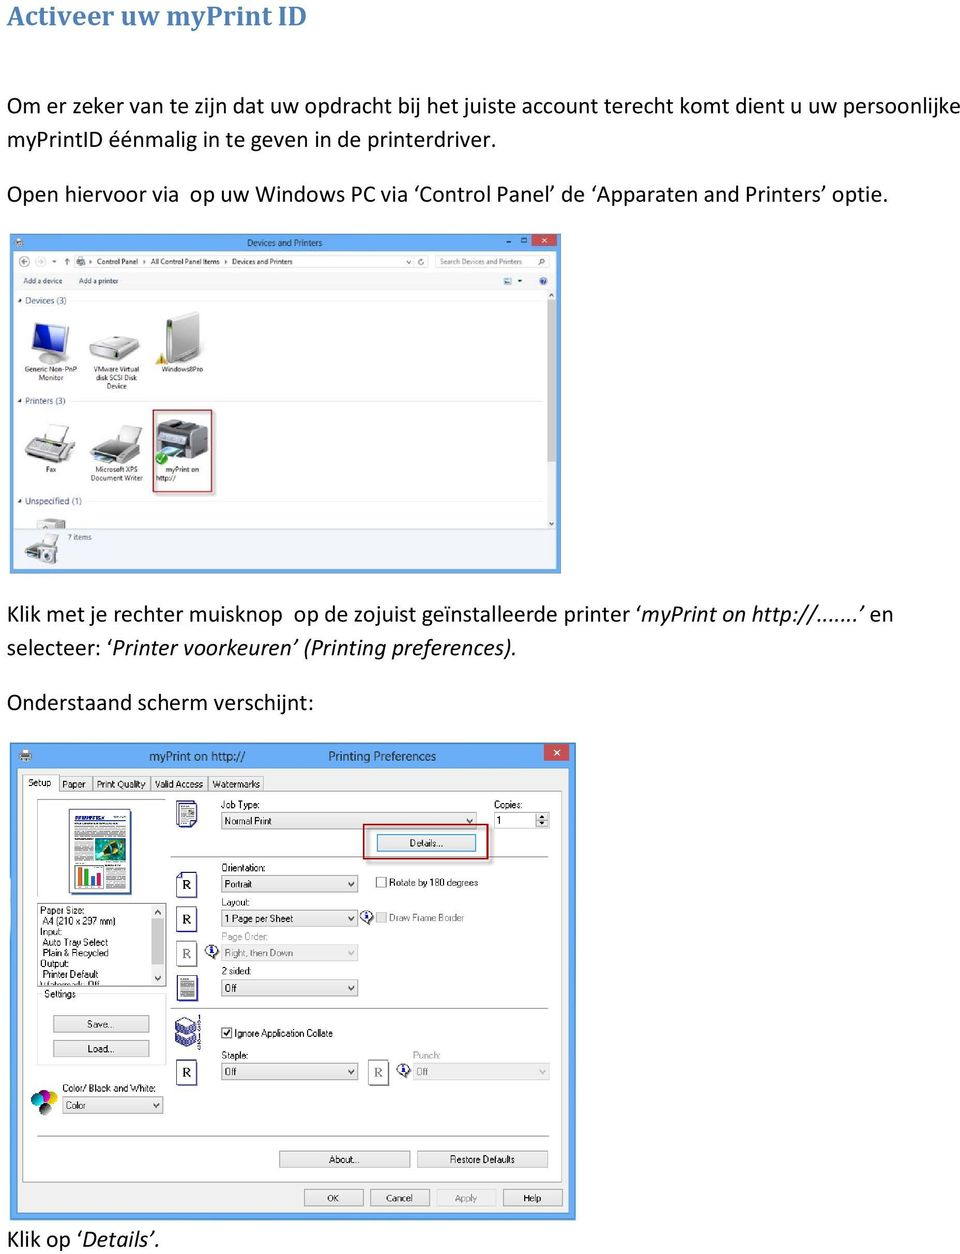 Open hiervoor via op uw Windows PC via Control Panel de Apparaten and Printers optie.